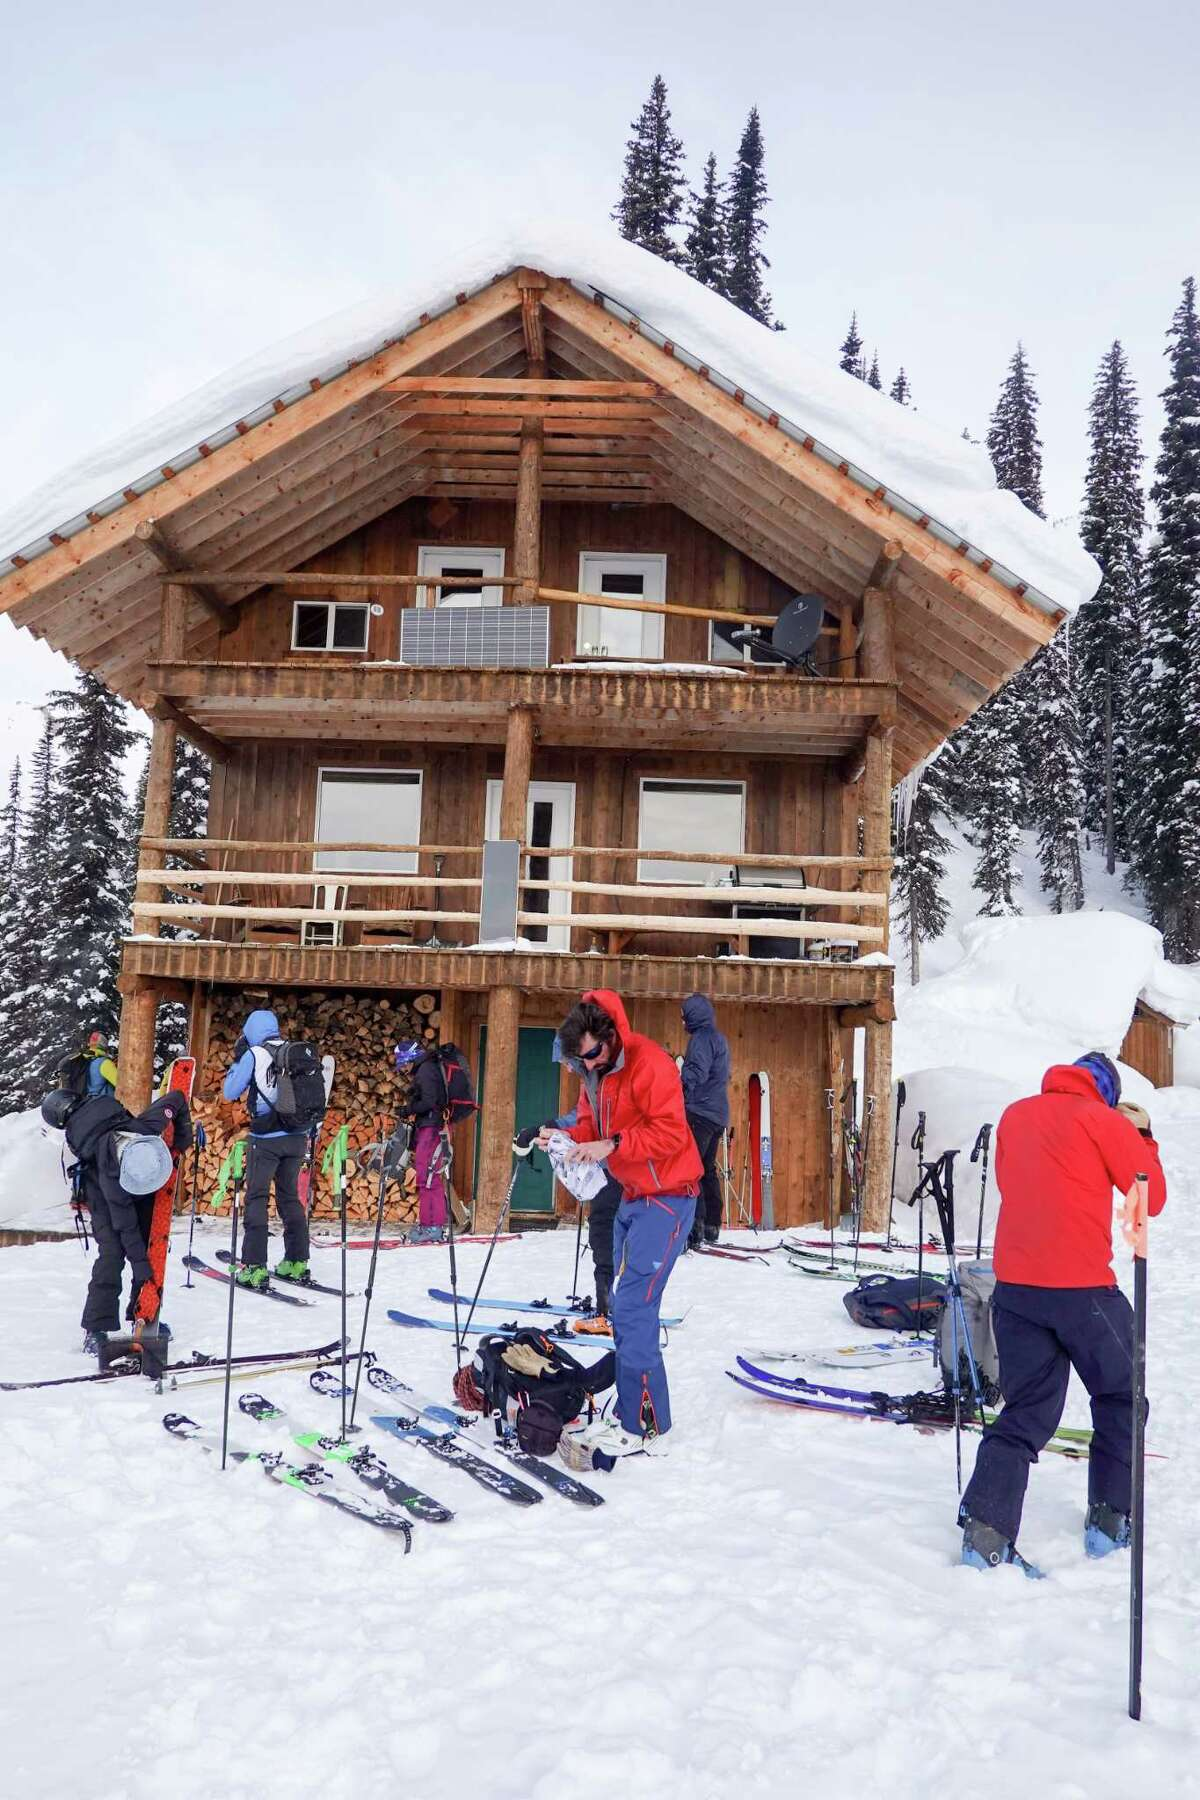 Guests at the Icefall Lodge in British Columbia prepare their ski gear before heading out one morning in March.